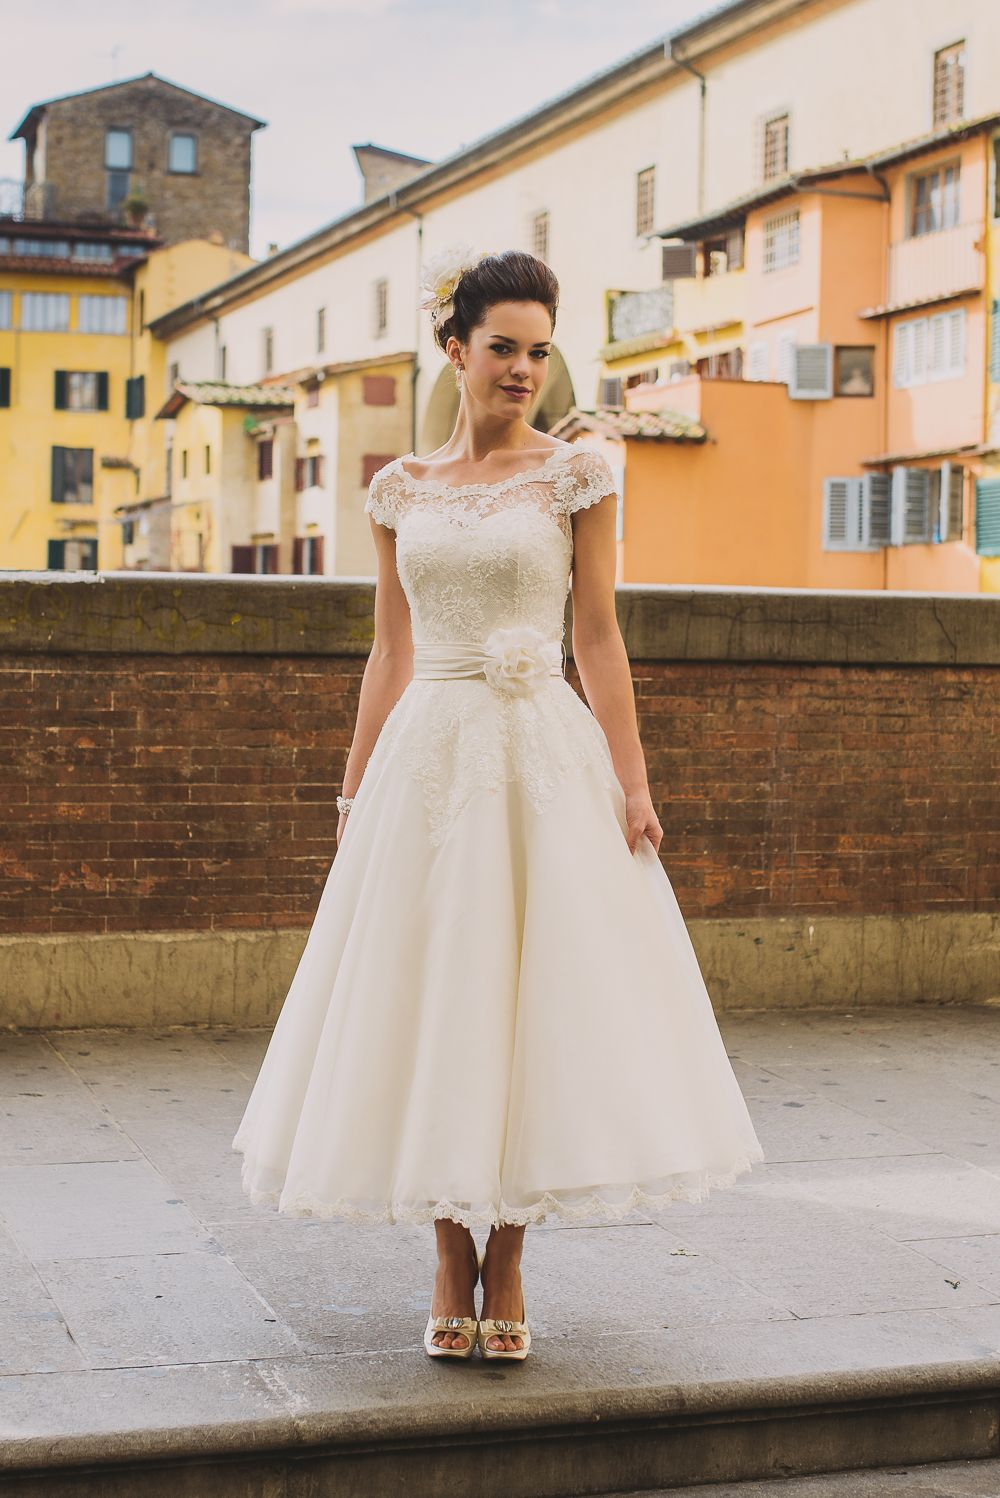 Wedding dress donations for military brides  Francesca Forget me Not Designs  Wedding dresses by Forget me not